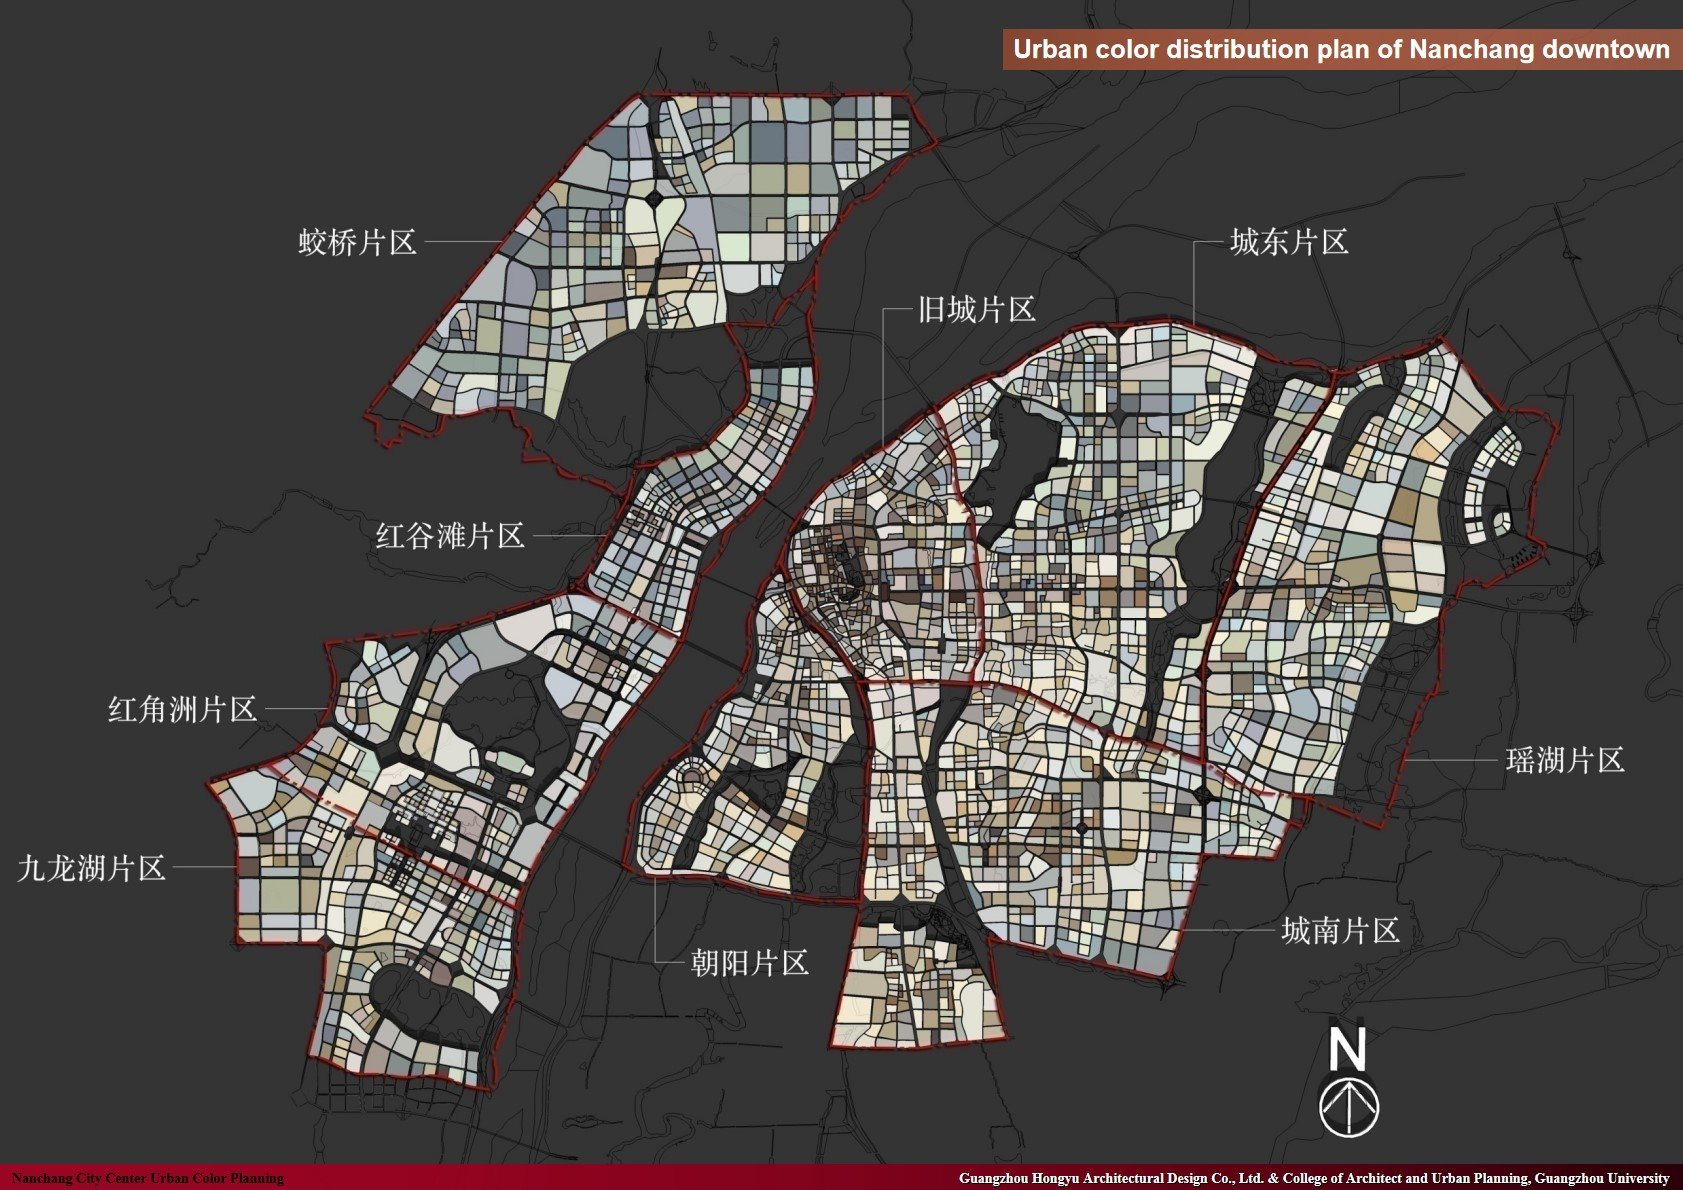 Urban color distribution plan of Nanchang downtown Guangzhou Hongyu Architectural Design Co., Ltd. & College of Architect and Urban Planning, Guangzhou University